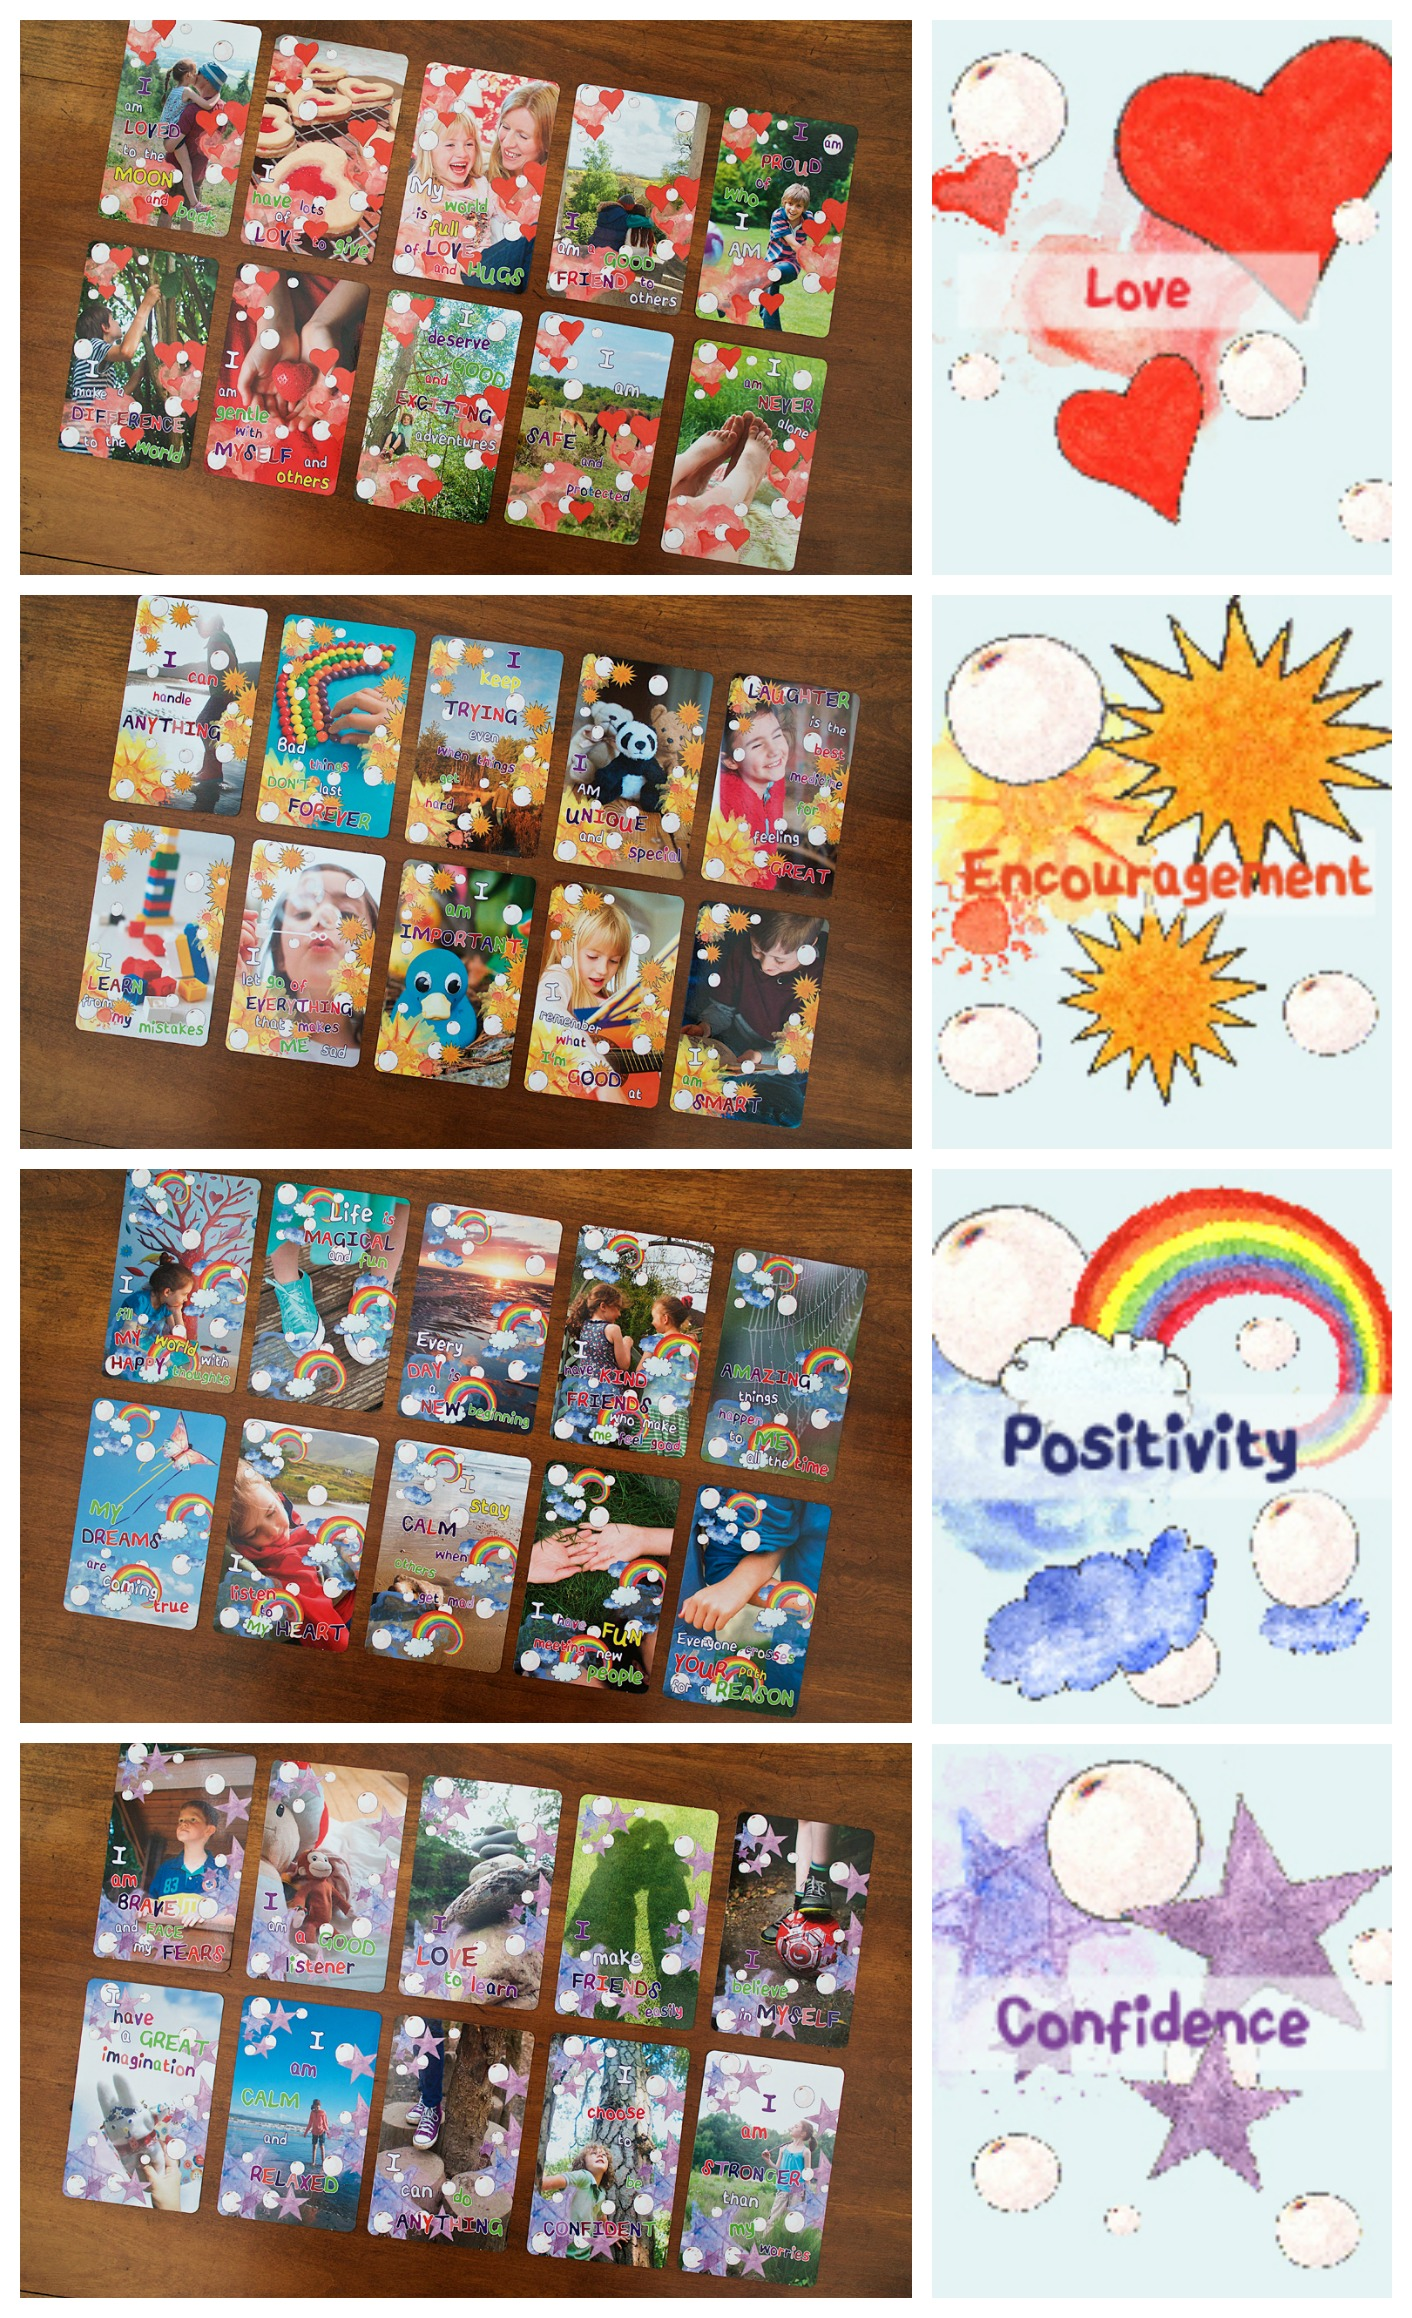 Love Encouragement Positivity and Confidence Affirmation Cards